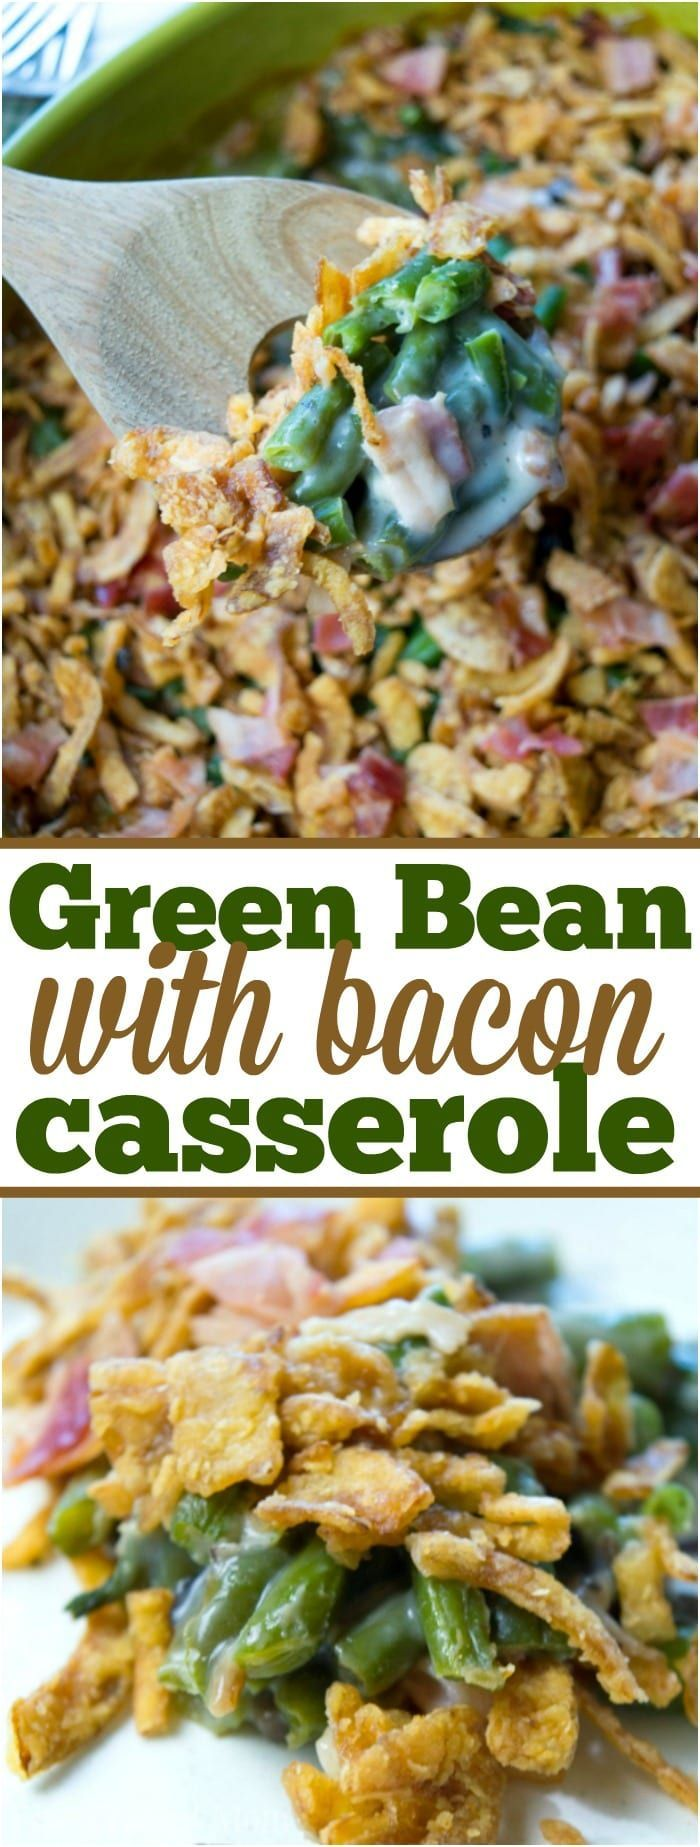 This is a really easy green bean casserole with bacon recipe that is to die for! The best Thanksgiving or Easter side dish with a creamy sauce and packed with tons of flavor. It is so delicious I make it year round with chicken or ham. It saves great for leftovers too, if you ever have any. #greenbean #bean #casserole #sidedish #vegetable #bacon #homemade #frozen via @pinterest.com/thetypicalmom #greenbeancasserolerecipe